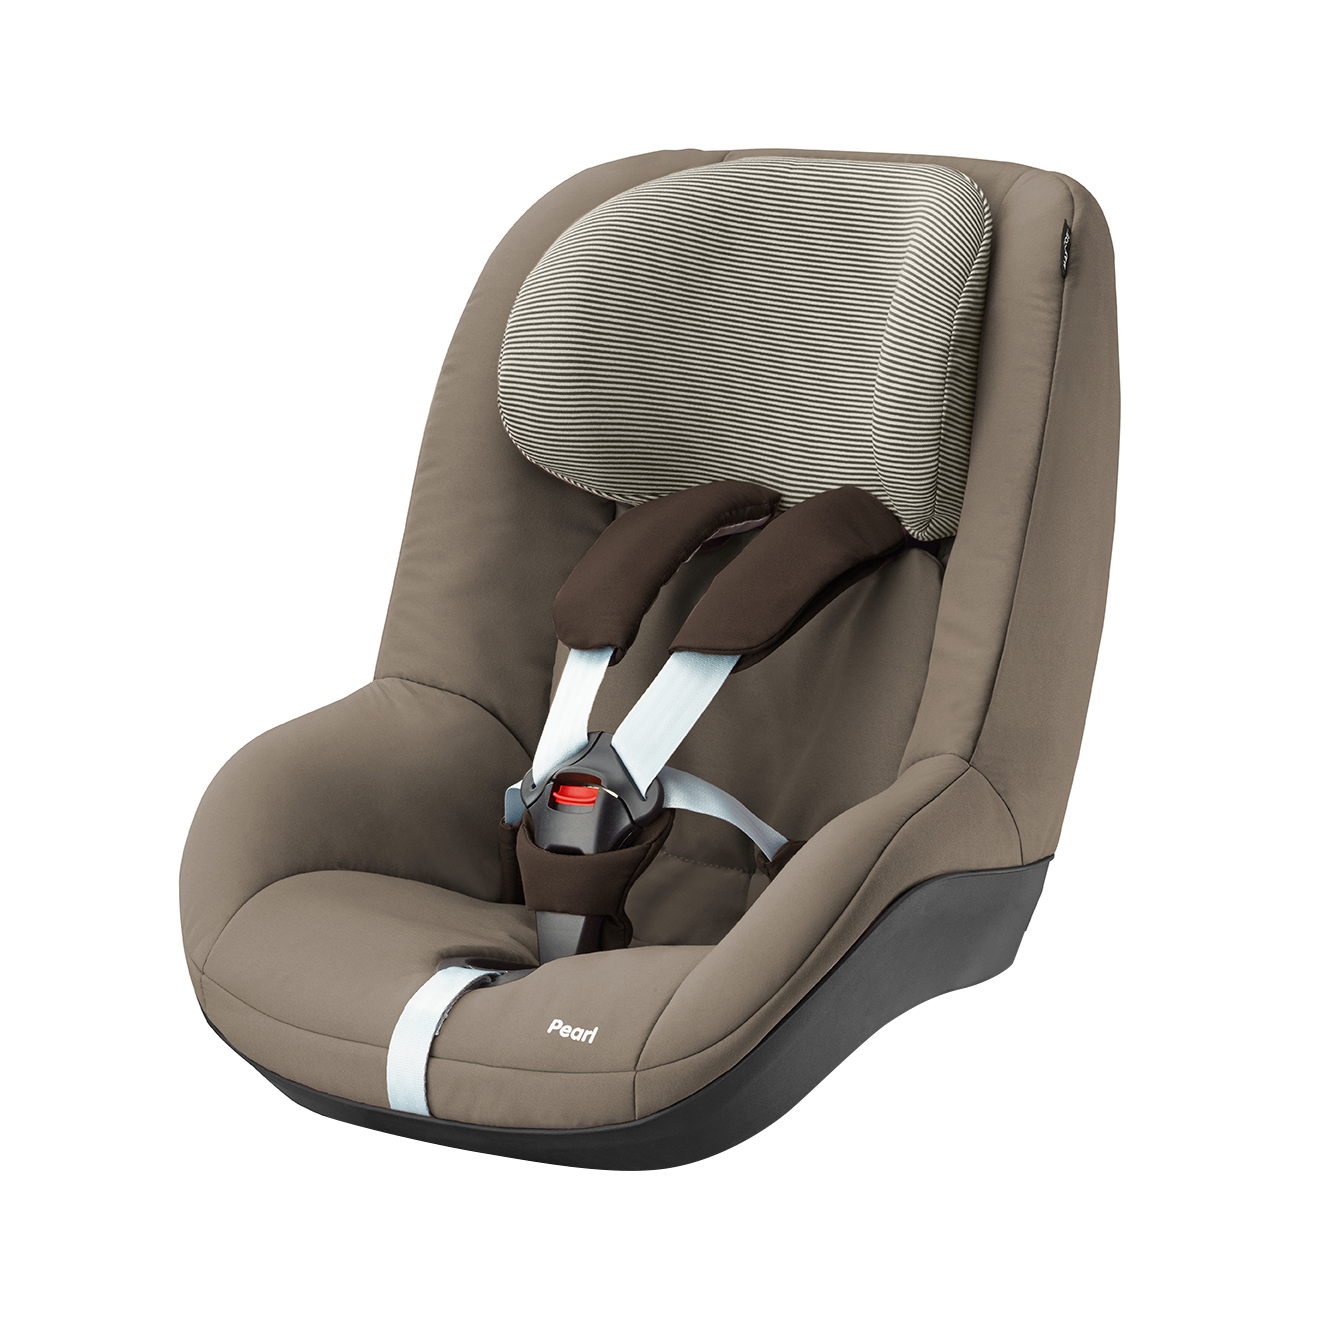 Maxi cosi child car seat pearl 2017 earth brown buy at for Maxi cosi housse